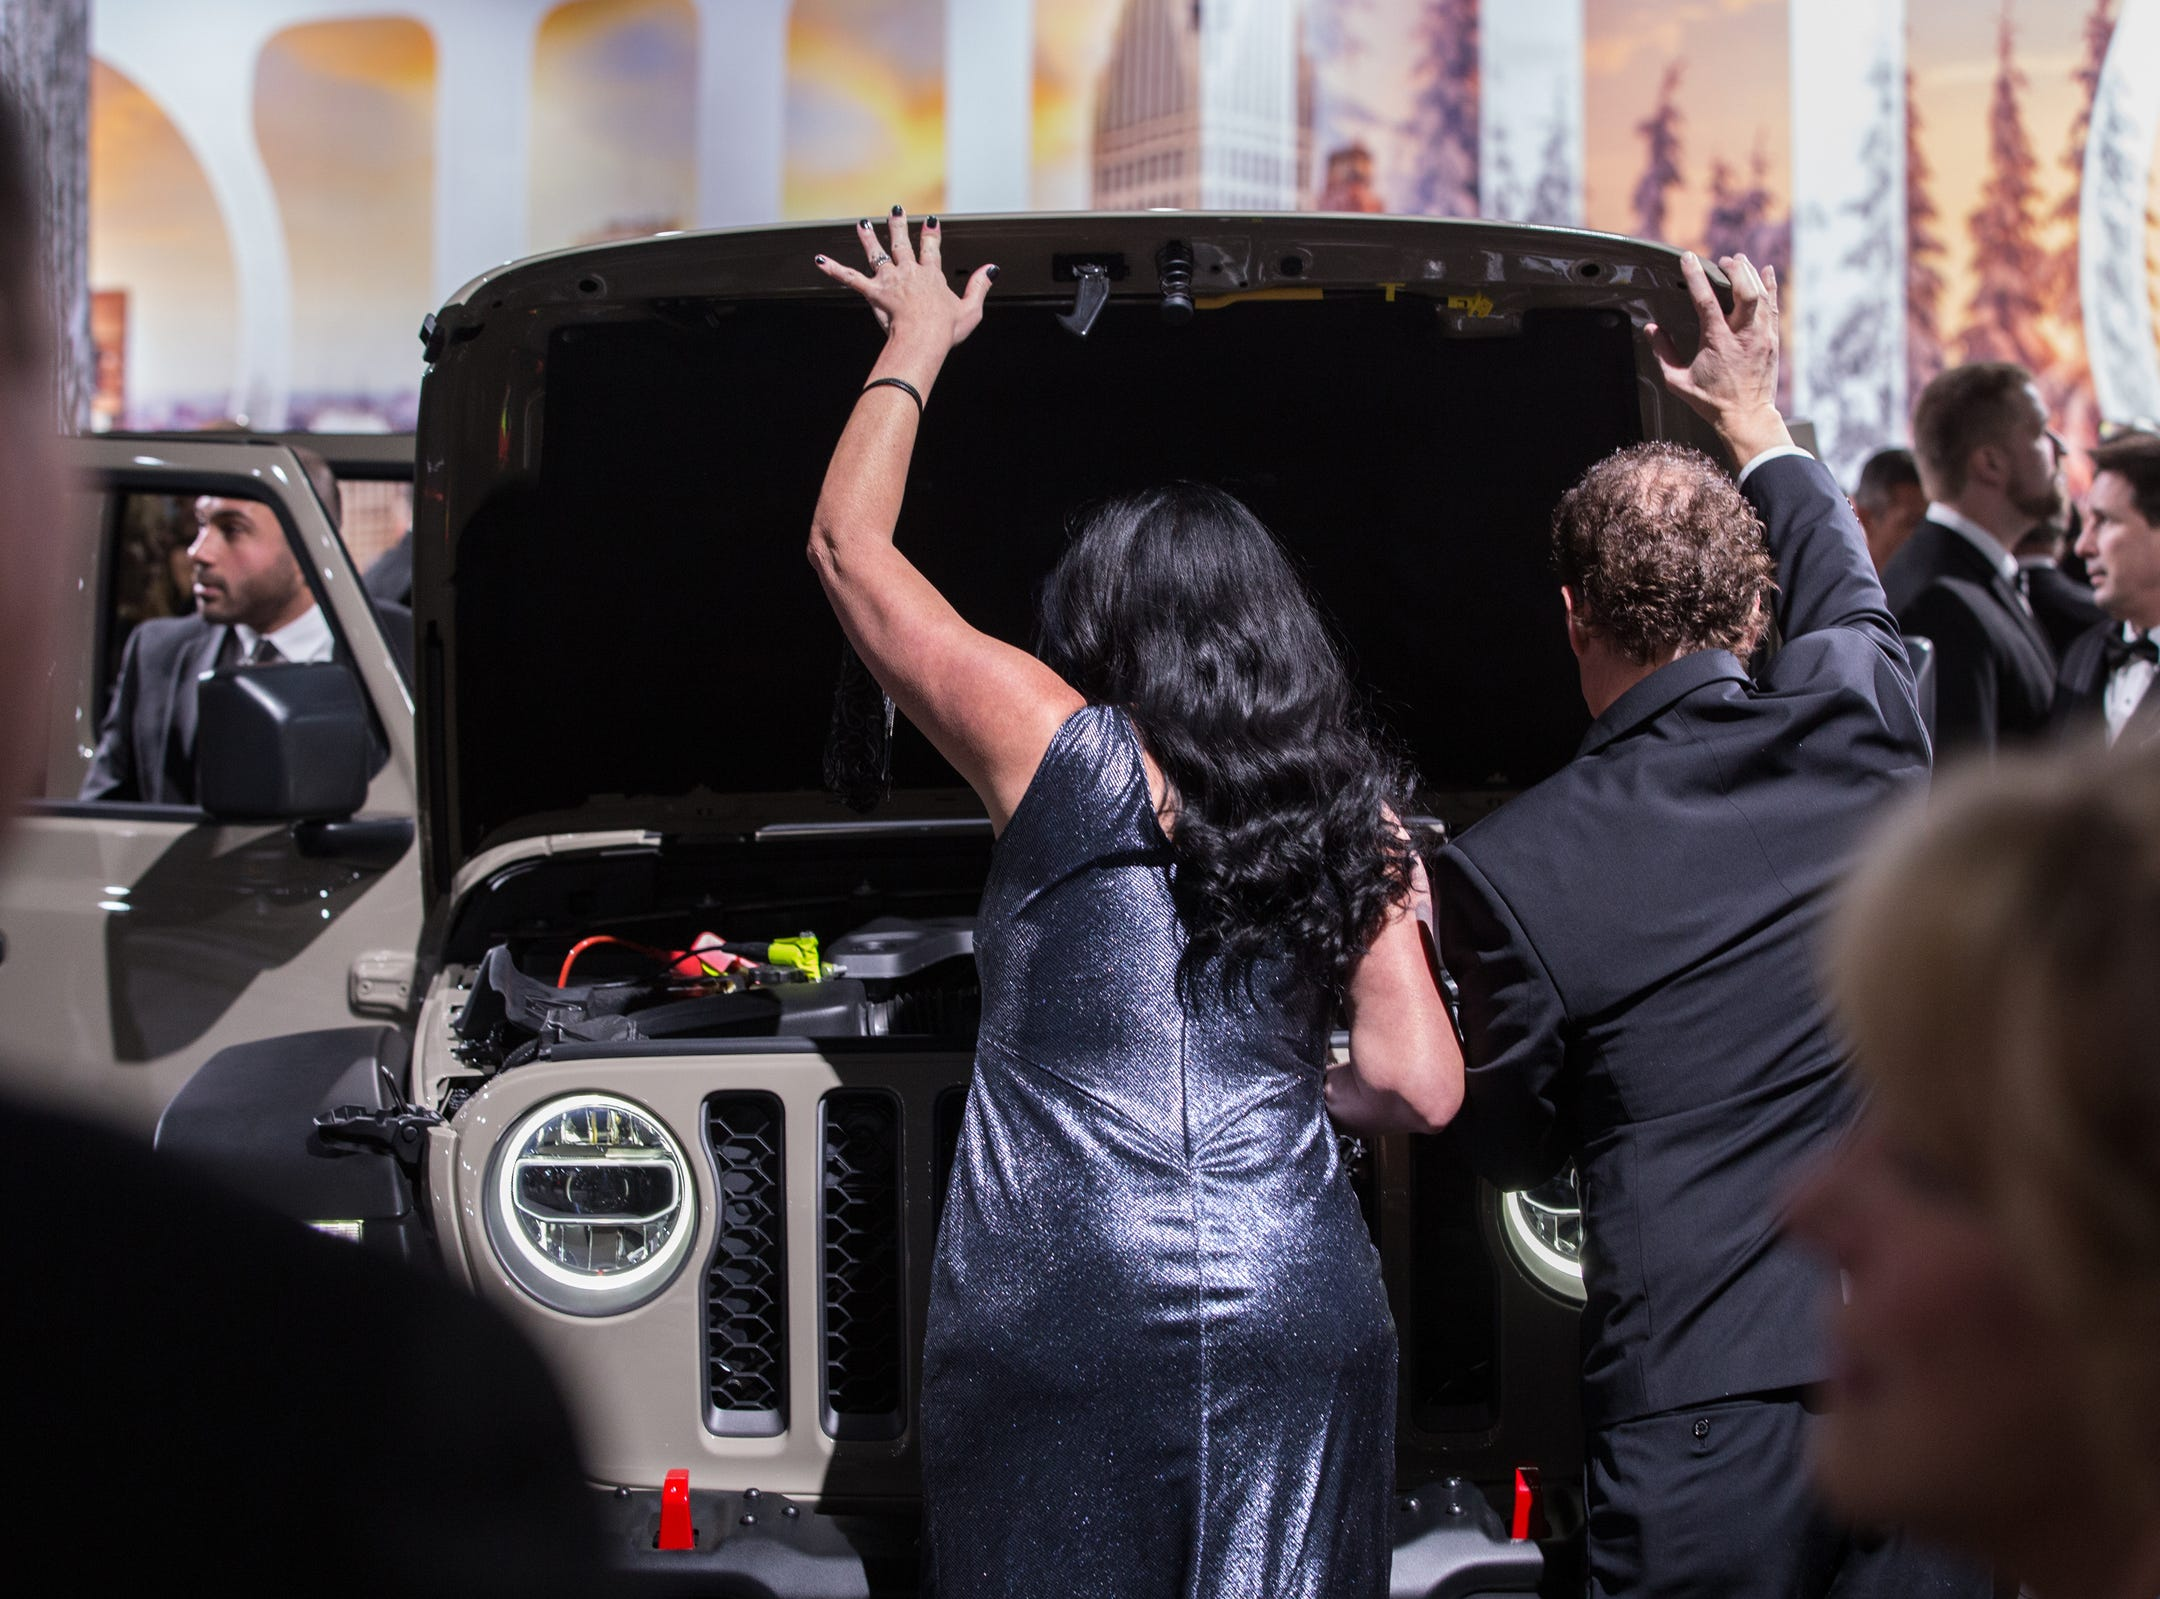 Rebecca Whitney and her husband Rick Whitney of Beverly Hills look under the hood of a Jeep Gladiator during the 2019 North American International Auto Show Charity Preview at Cobo Center in Detroit on Friday, January 18, 2019.